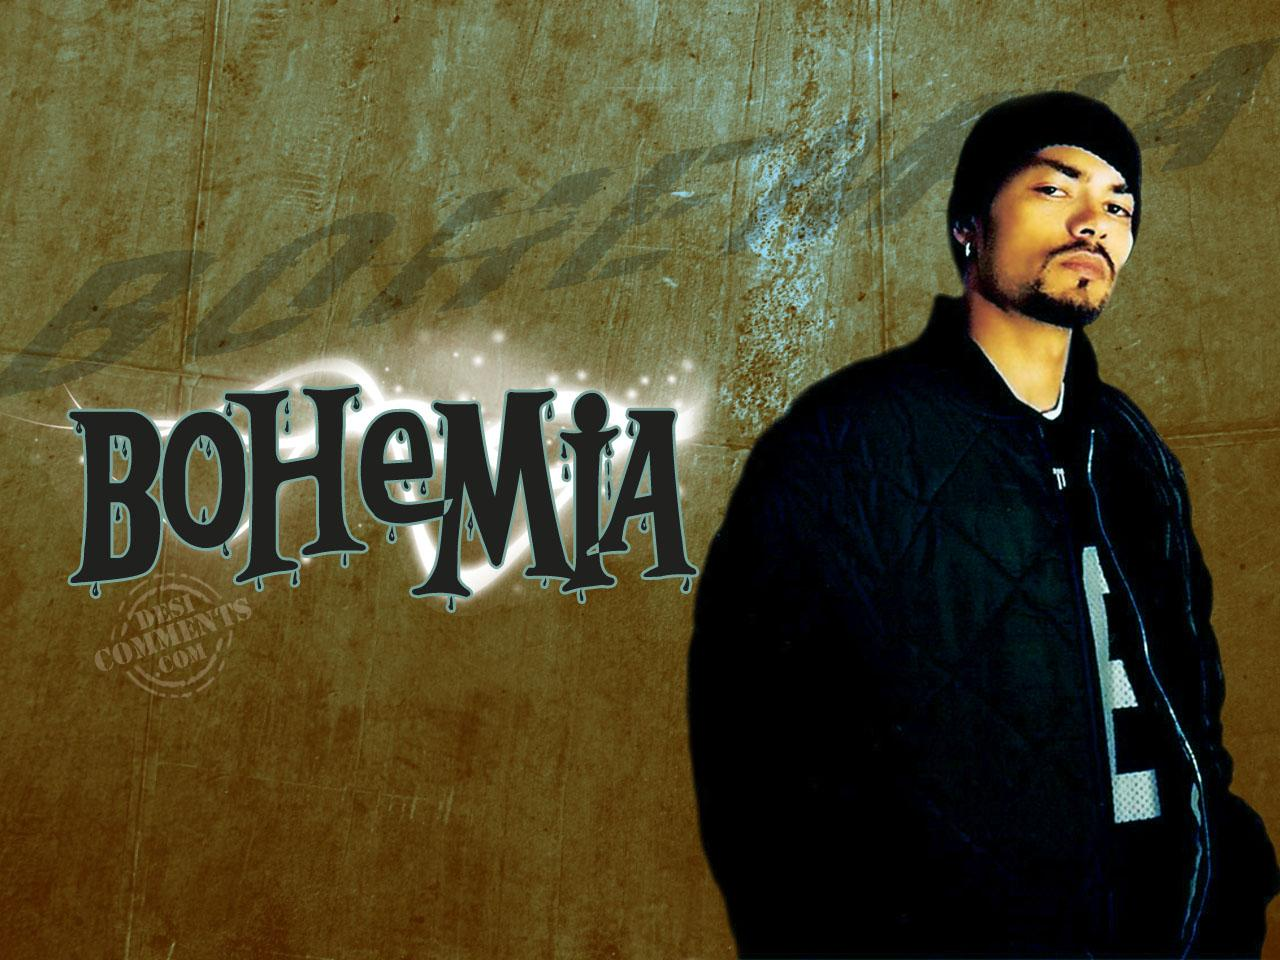 Bohemia Quotes Wallpaper Bohemia Punjabi Celebrities Wallpapers